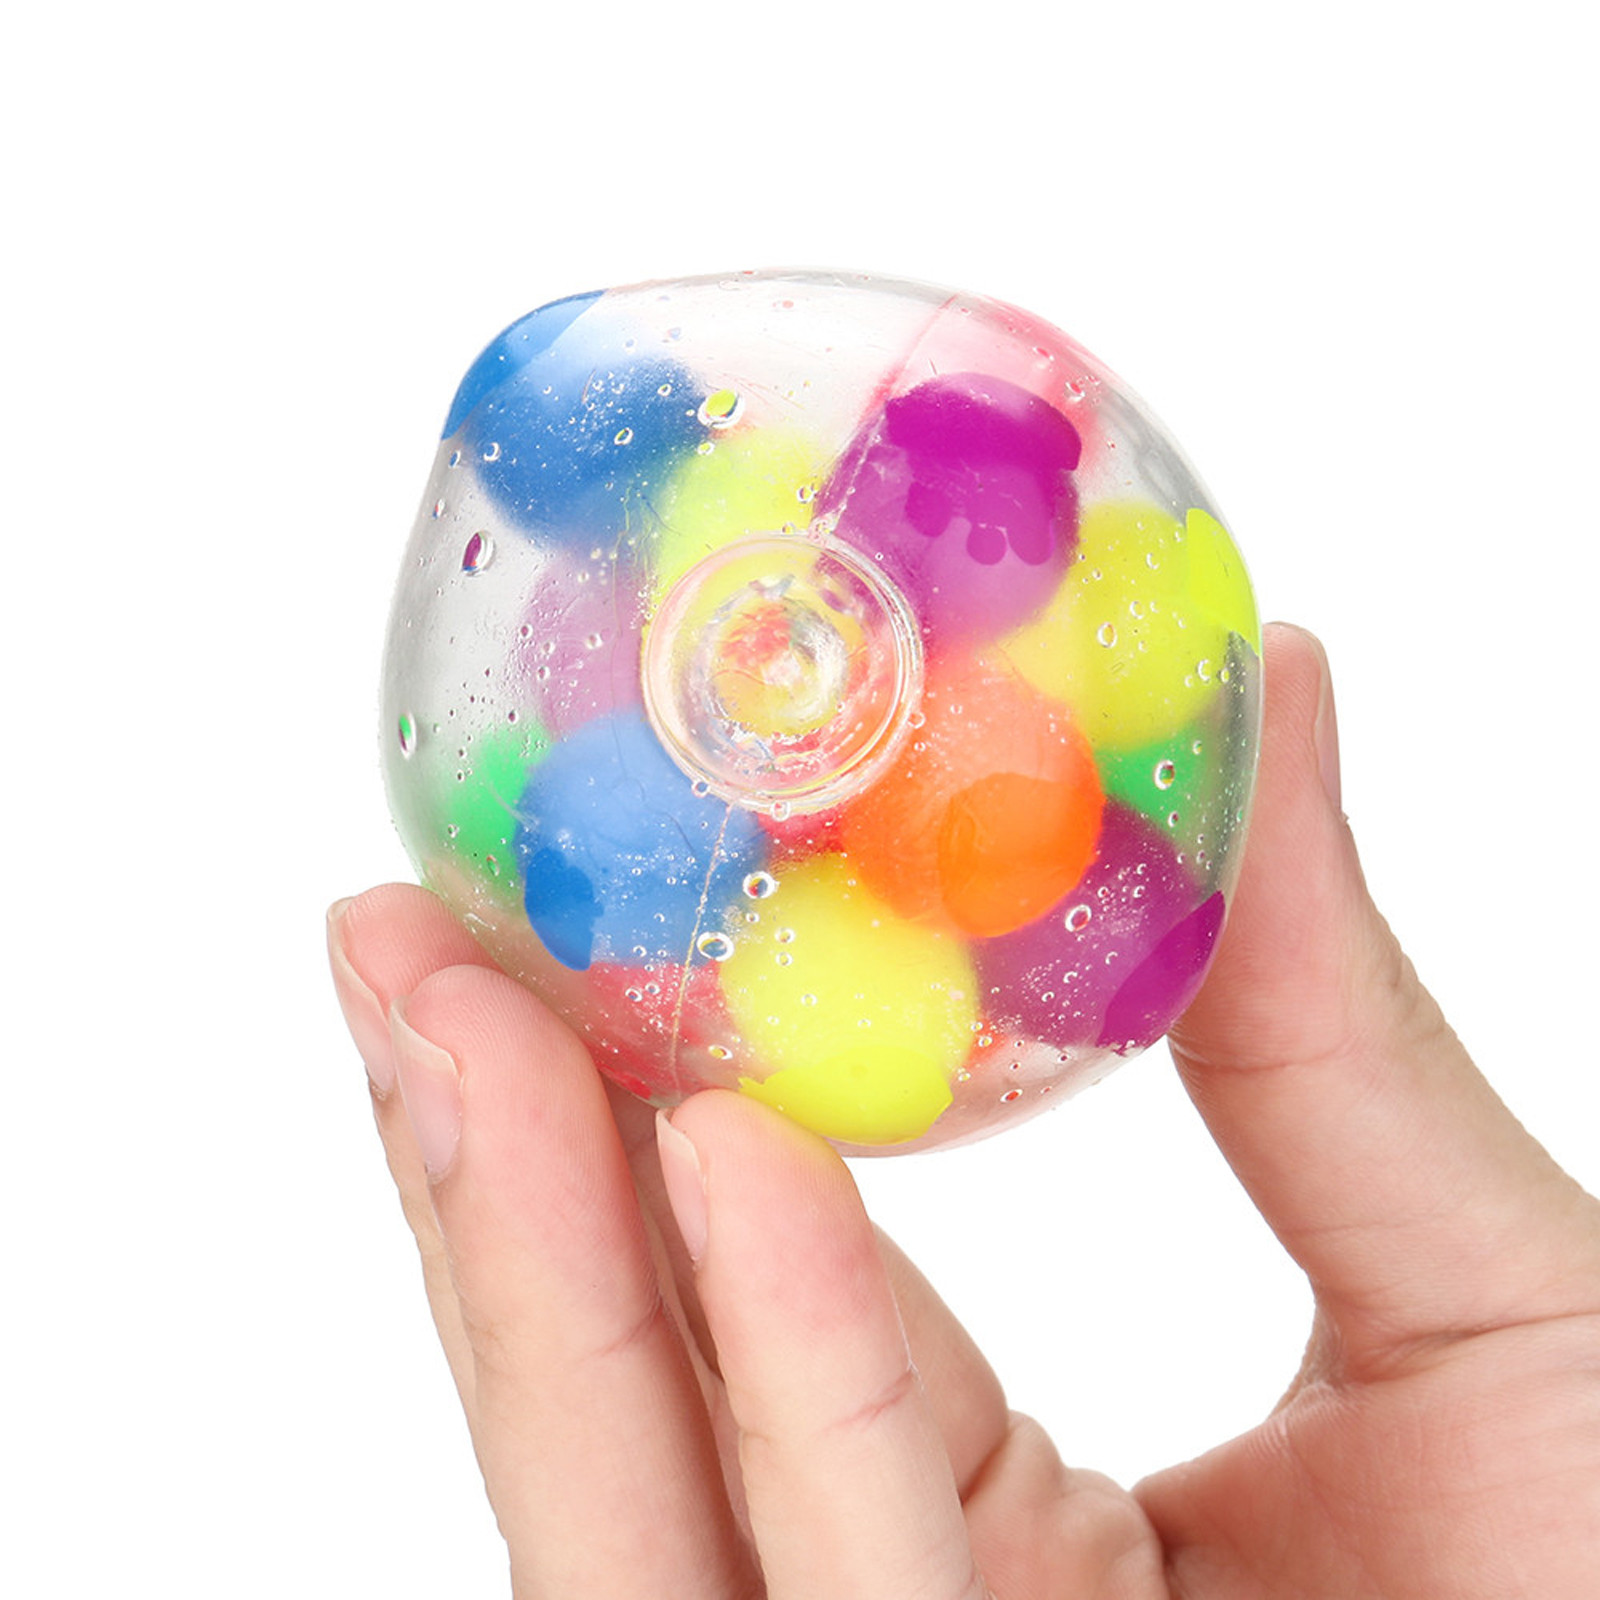 Figet Toys Stress-Ball Popit Pressure-Ball-Stress Reliever Color-Sensory 2PCS Office img3